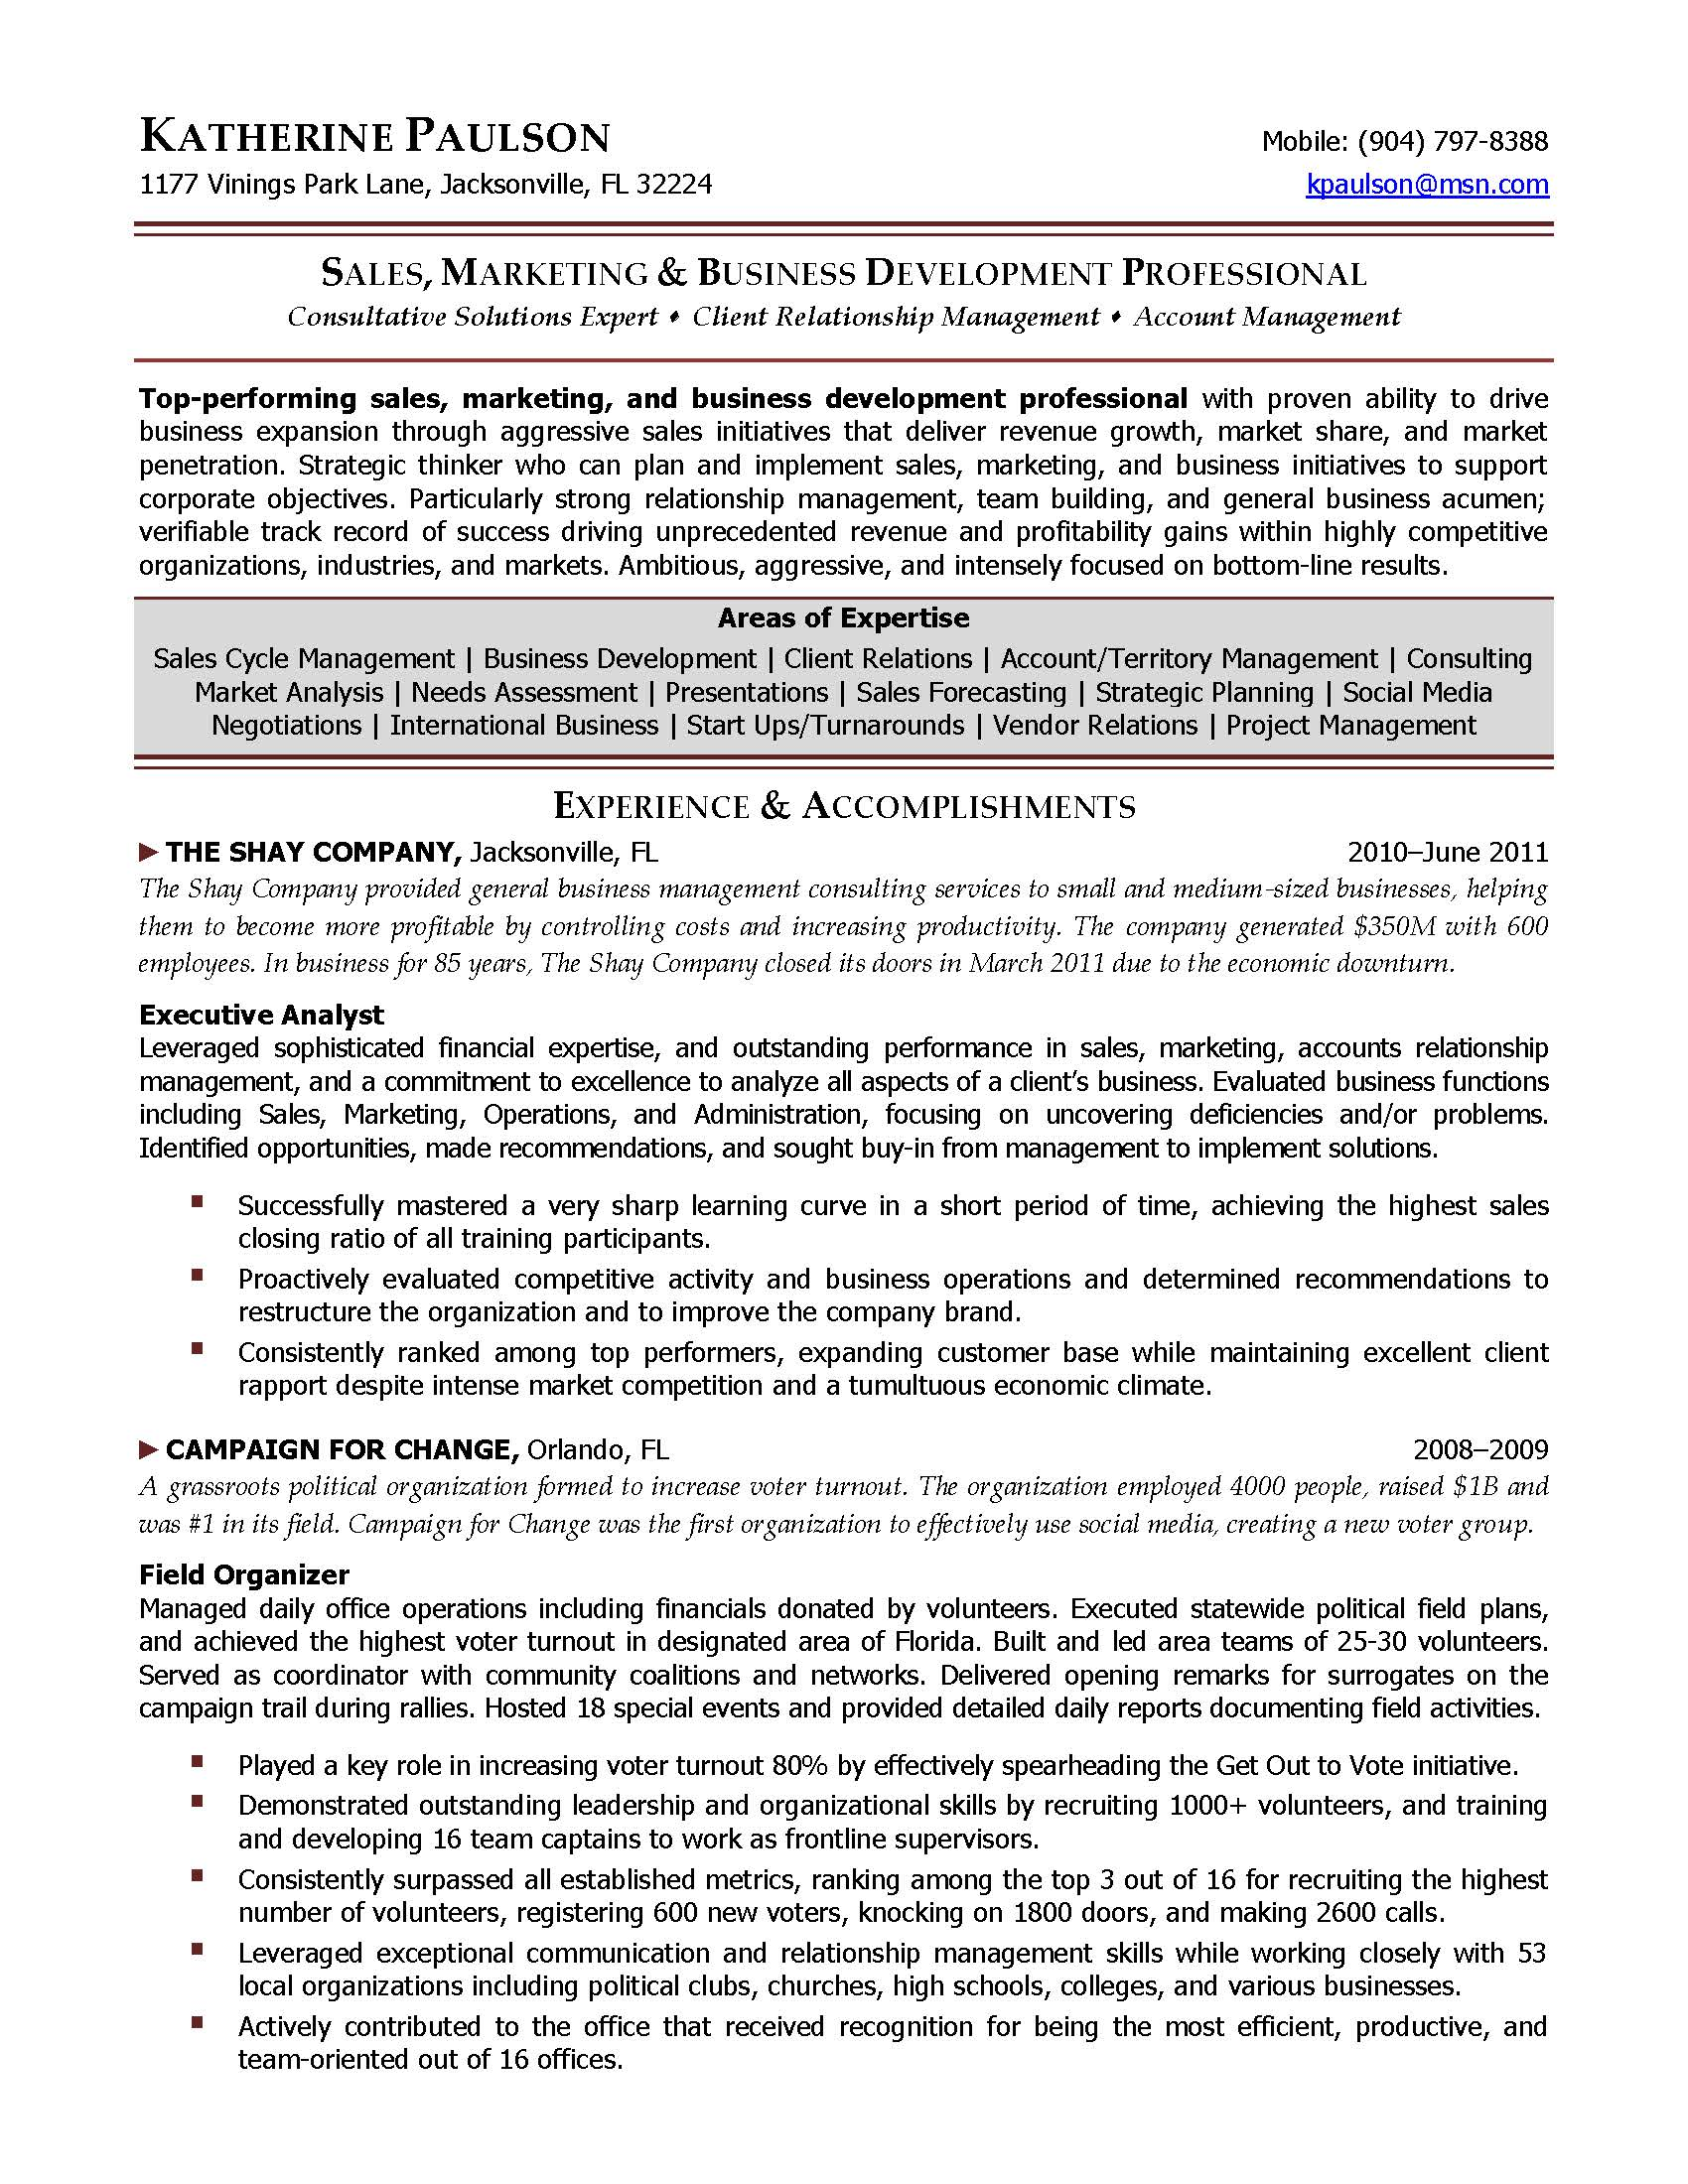 Director of economic development resume